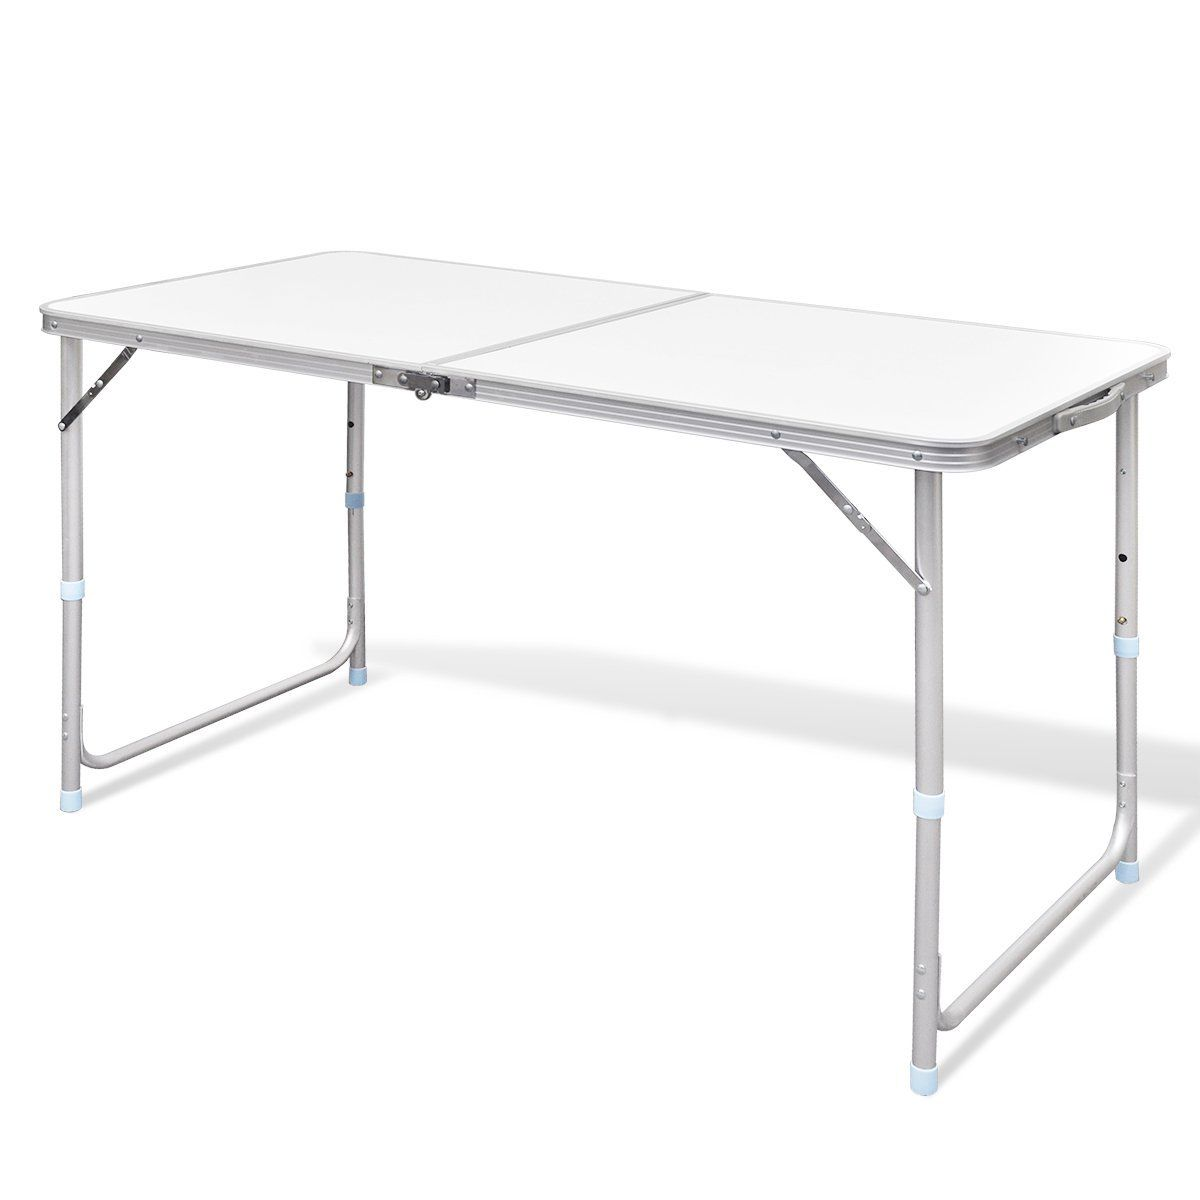 Aluminium Folding Portable Garden Camping Picnic BBQ Table Height Adjustable 120 x 60 cm - white